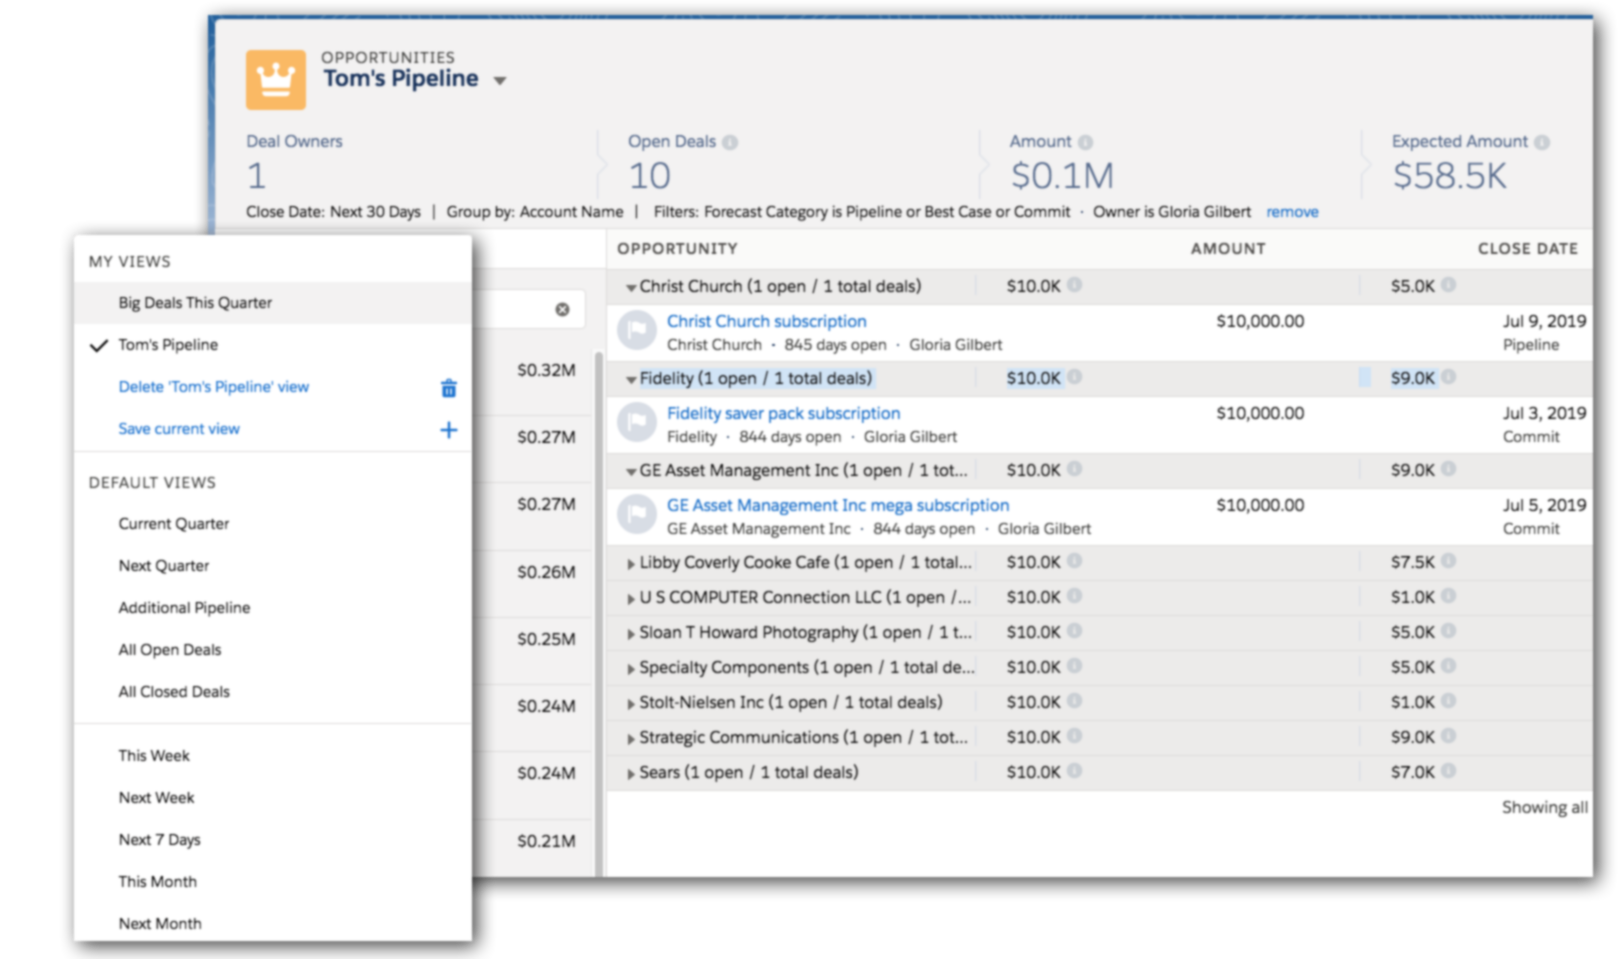 Focused and efficient pipeline reviews with configurable views